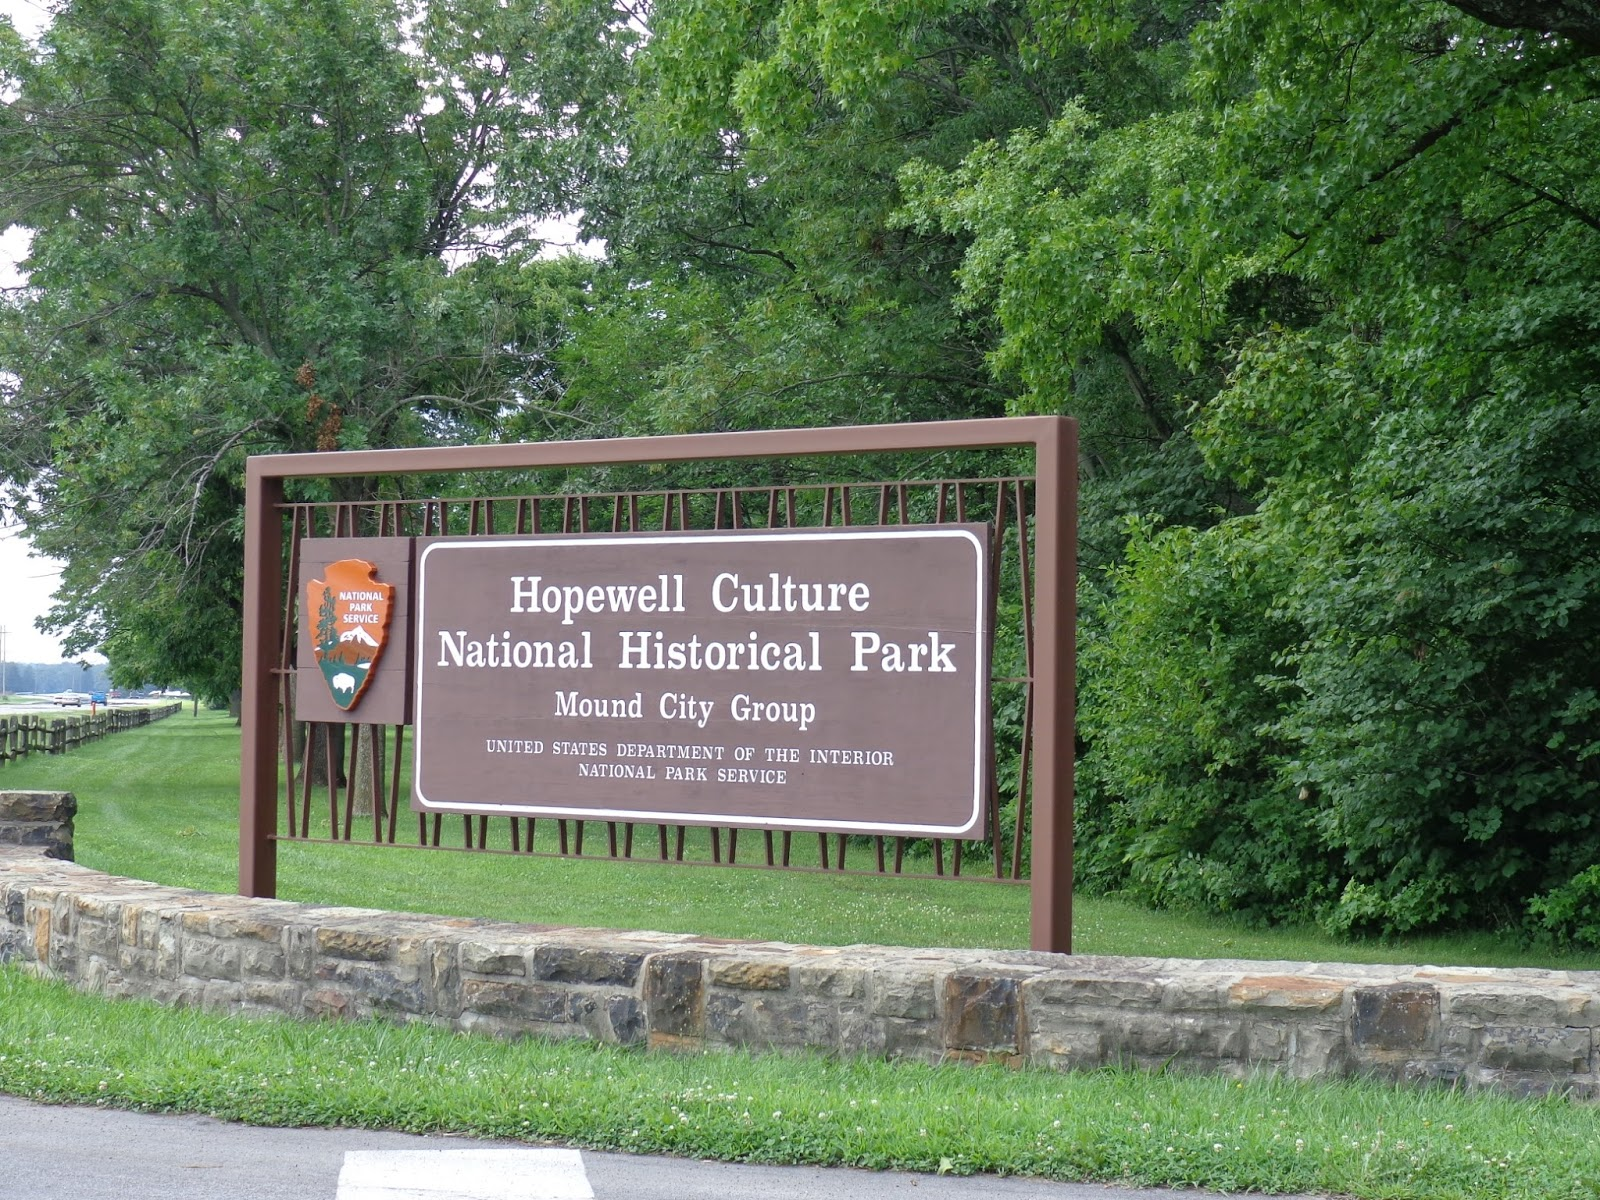 the hopewell culture He called the site hopewell, after the local landowner not long thereafter, archaeologists applied the hopewell name to the entire pre-columbian culture in the region at a hopewell site in ohio.